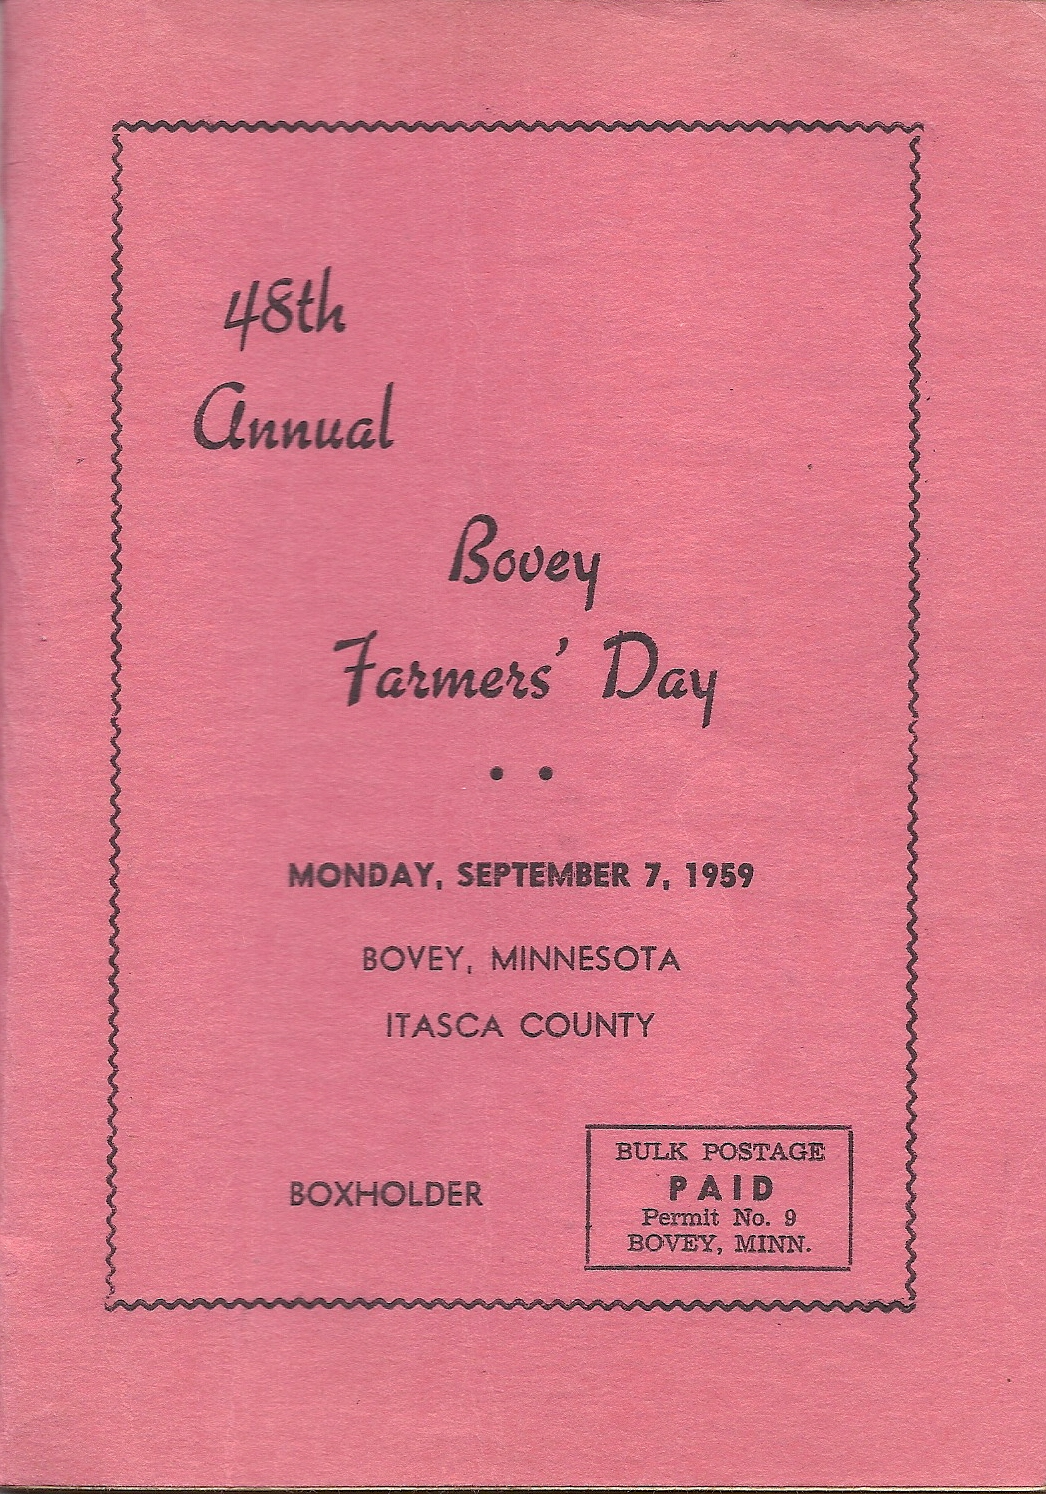 Farmers' Day booklets0002